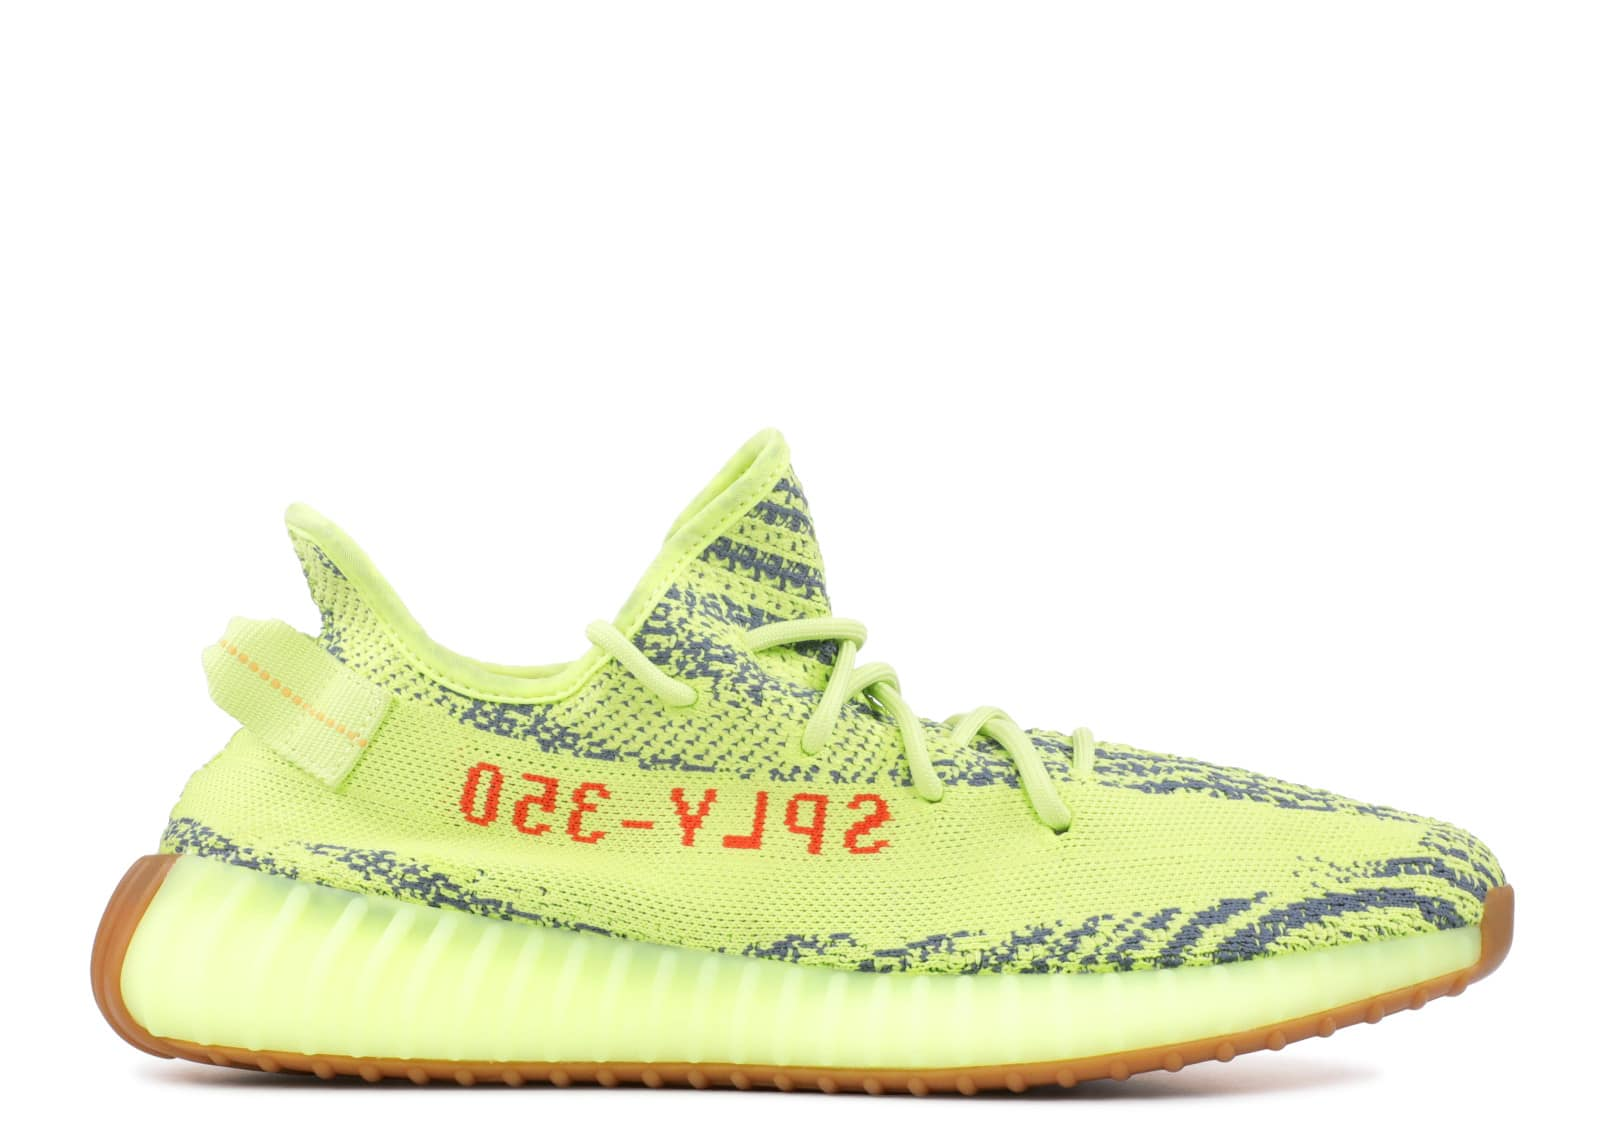 9618247b8 Yeezy 350 V2 Semi Frozen Yellow – Soled Out 915